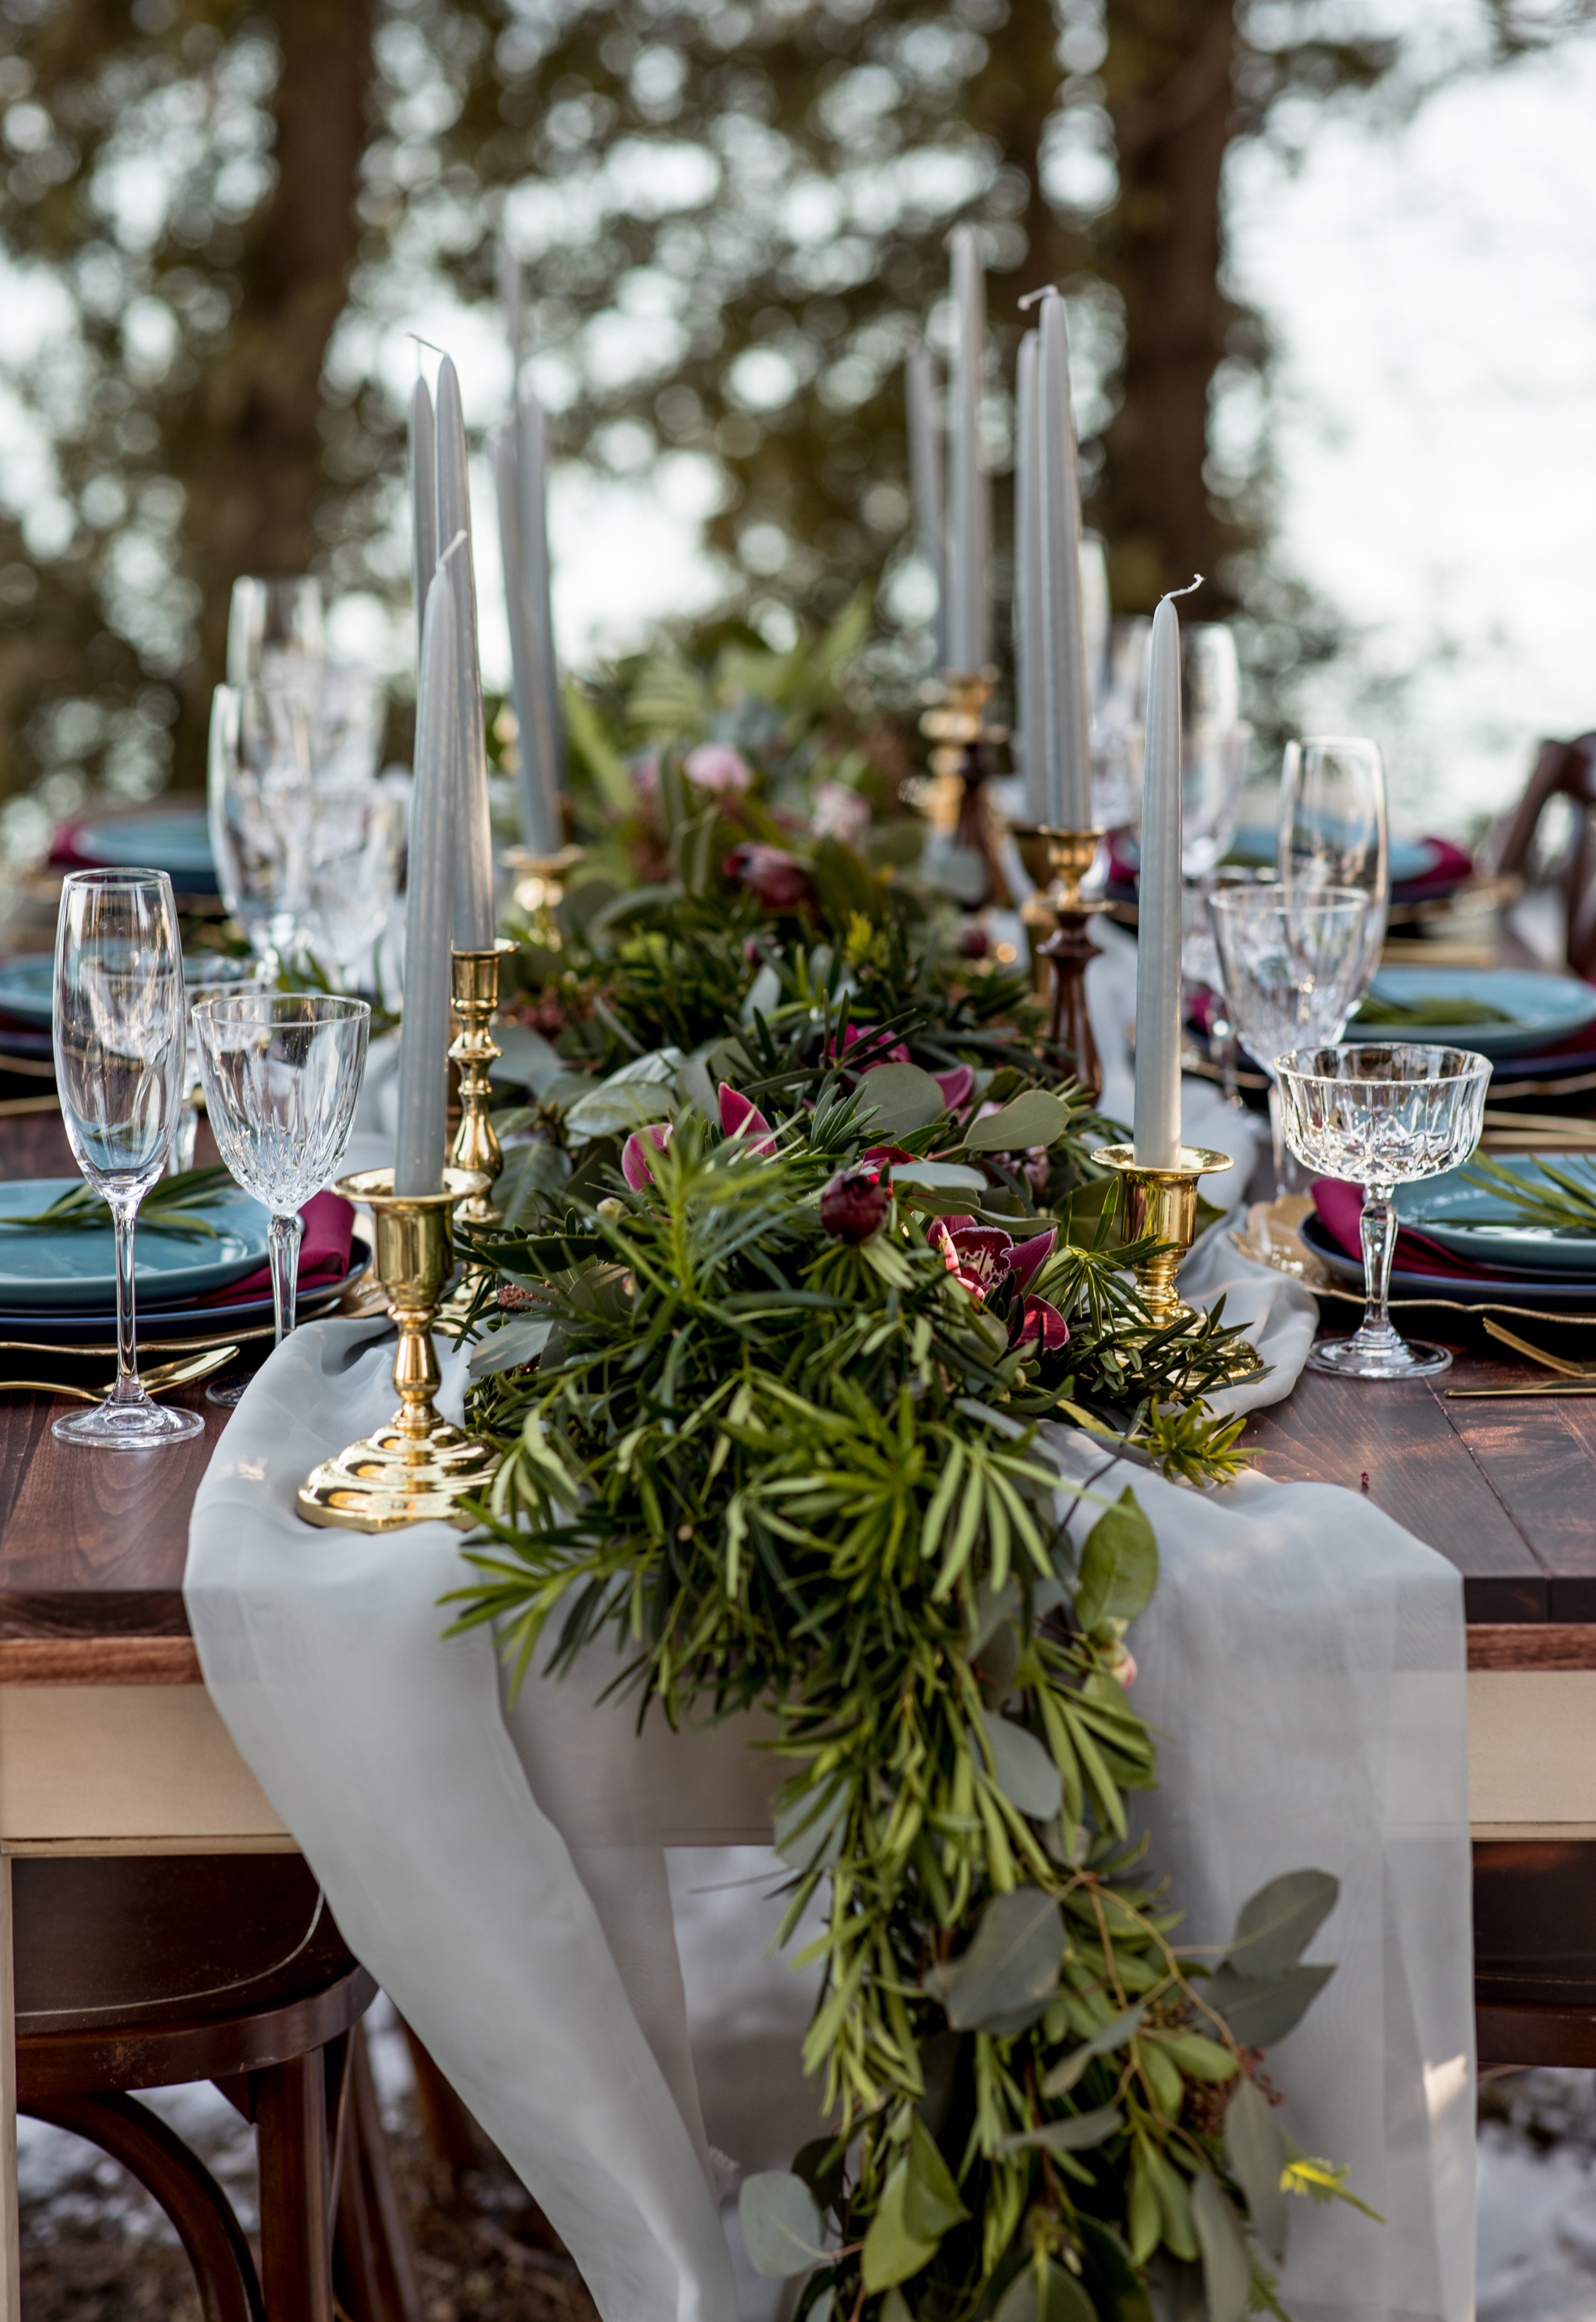 Vintage Farmhouse Tables - Ebb & Flow Florals - Cave Point - Cascading Greenery with Pops of Wine Colored Orchids - With Hints of Gold Accents - Jewel Tones Complimenting the Deep Stained Wooden Tables - Hove Photography - International Wedding & Elopement Photographer.